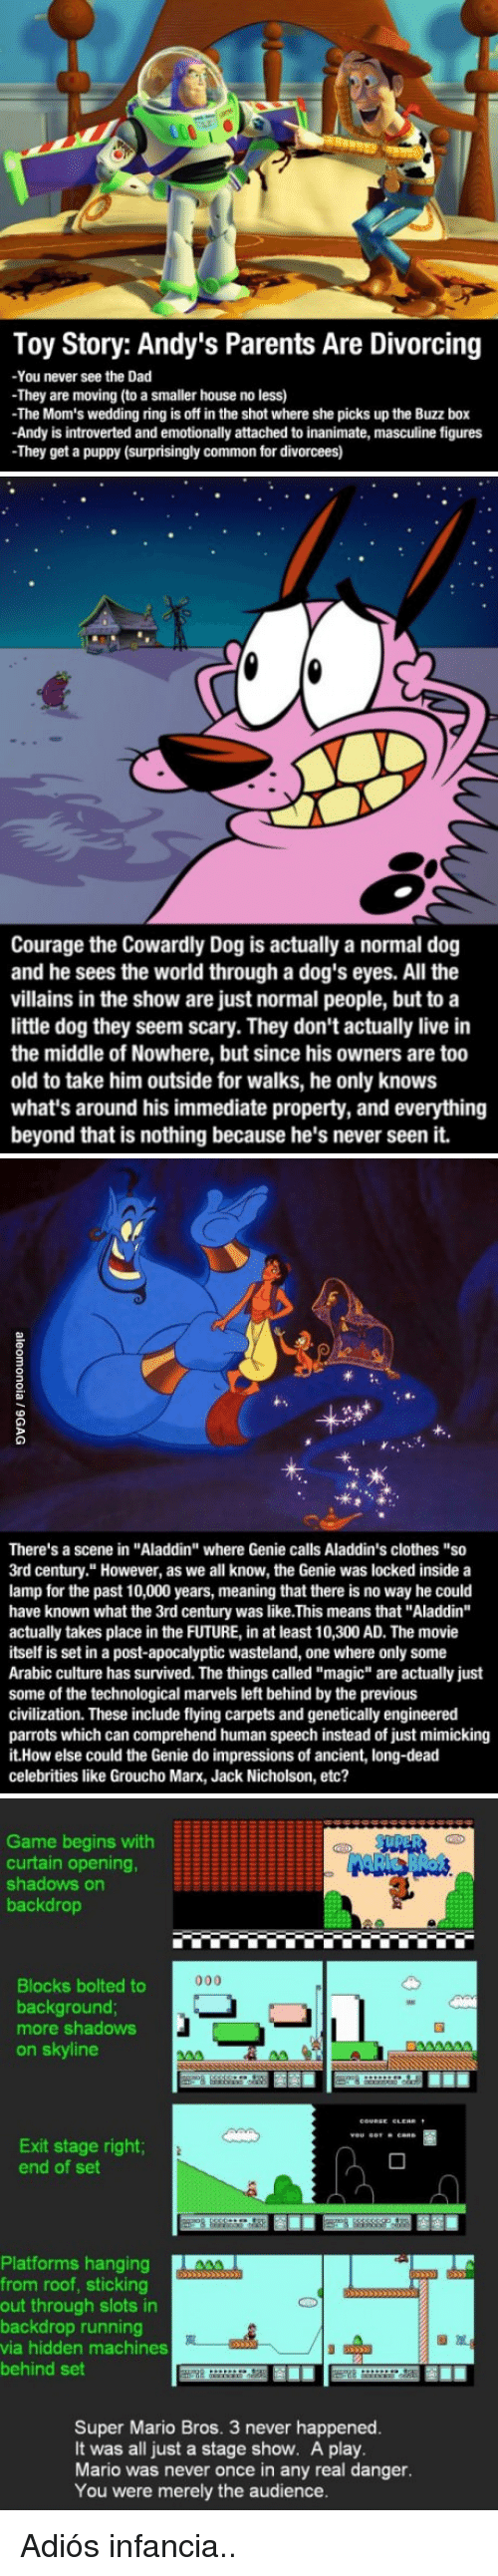 """Aladdin, Clothes, and Courage the Cowardly Dog: Toy Story: Andy's Parents Are Divorcing  -You never see the Dad  -They are moving (to a smaller house no less)  The Mom's wedding ring is off in the shot where she picks up the Buzz box  -Andy is introverted and emotionally attached to inanimate, masculine figures  -They get a puppy (surprisingly common for divorcees)   Courage the Cowardly Dog is actually a normal dog  and he sees the world through a dog's eyes. All the  villains in the show are just normal people, but to a  little dog they seem scary. They don't actually live in  the middle of Nowhere, but since his owners are too  old to take him outside for walks, he only knows  what's around his immediate property, and everything  beyond that is nothing because he's never seen it.   There's a scene in """"Aladdin"""" where Genie calls Aladdin's clothes """"so  3rd century."""" However, as we all know, the Genie was locked inside a  lamp for the past 10,000 years, meaning that there is no way he could  have known what the 3rd century was like.This means that """"Aladdin""""  actually takes place in the FUTURE, in at least 10,300 AD. The movie  itself is set in a post-apocalyptic wasteland, one where only some  Arabic culture has survived. The things called """"magic"""" are actually just  some of the technological marvels left behind by the previous  civilization. These include flying carpets and genetically engineered  parrots which can comprehend human speech instead of just mimicking  t.How else could the Genie do impressions of ancient, long-dead  celebrities like Groucho Marx, Jack Nicholson, etc?   Game begins with  curtain opening,  shadows on  backdrop  3  Blocks bolted to  background  more shadows  on skyline  Exit stage right  end of set  Platforms hanging  from roof, sticking  out through slots in  backdrop running  via hidden machines  behind set  囫厘.  Super Mario Bros. 3 never happened.  It was all just a stage show. A play.  Mario was never once in any real danger.  You were"""